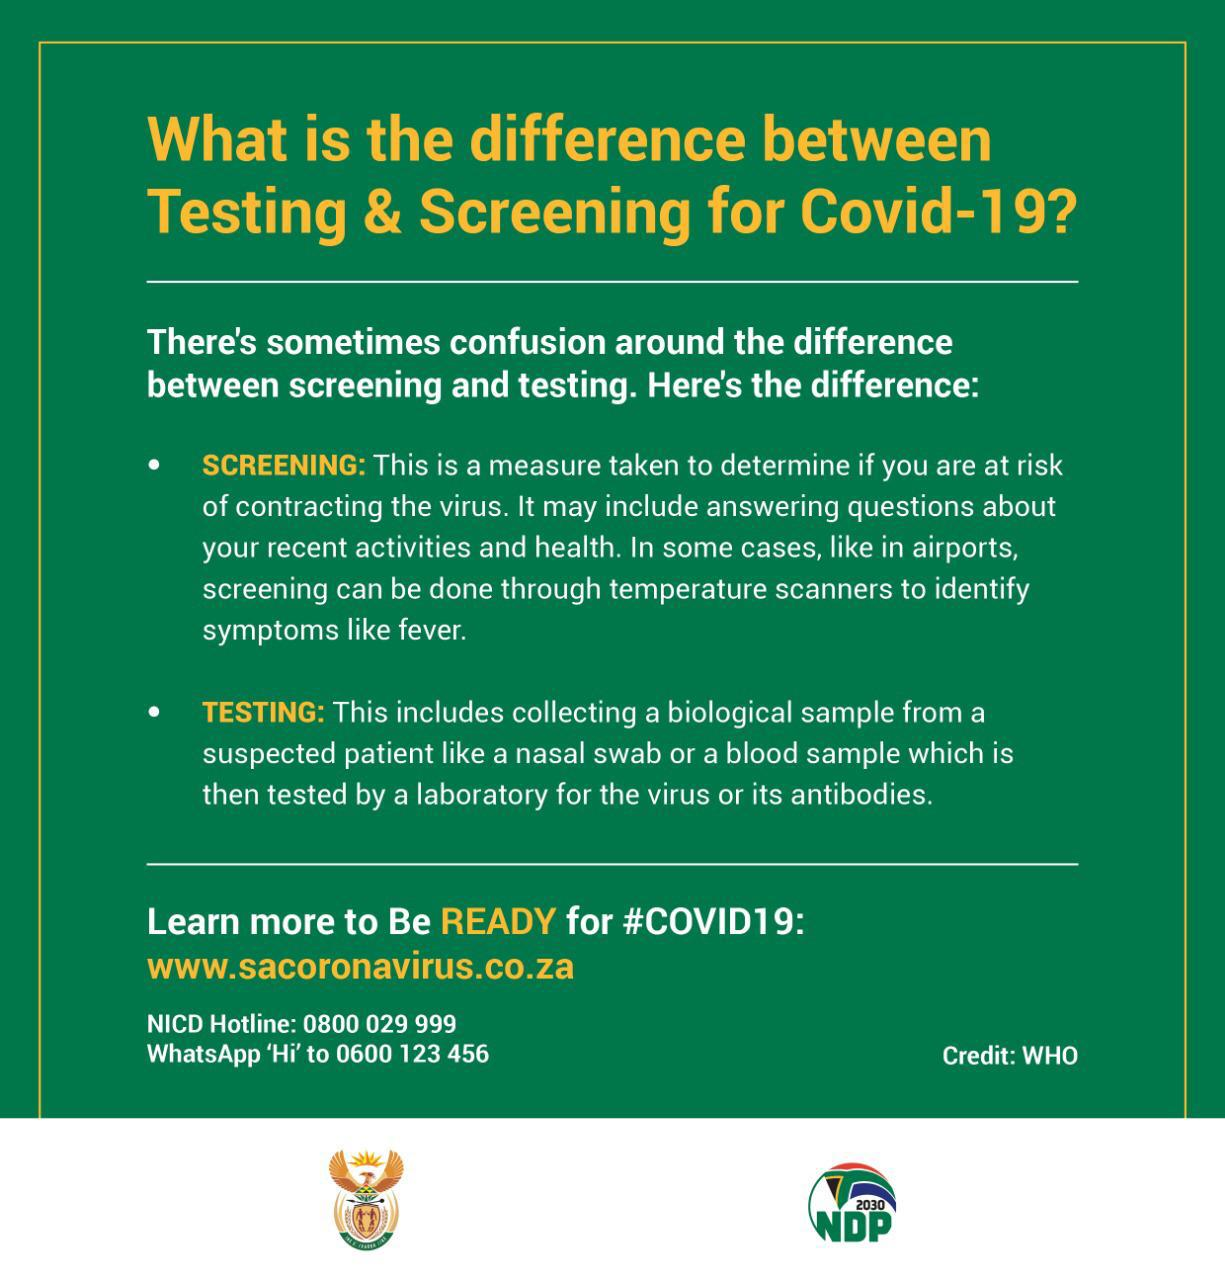 Social Media - COVID-19 Difference between testing and screening